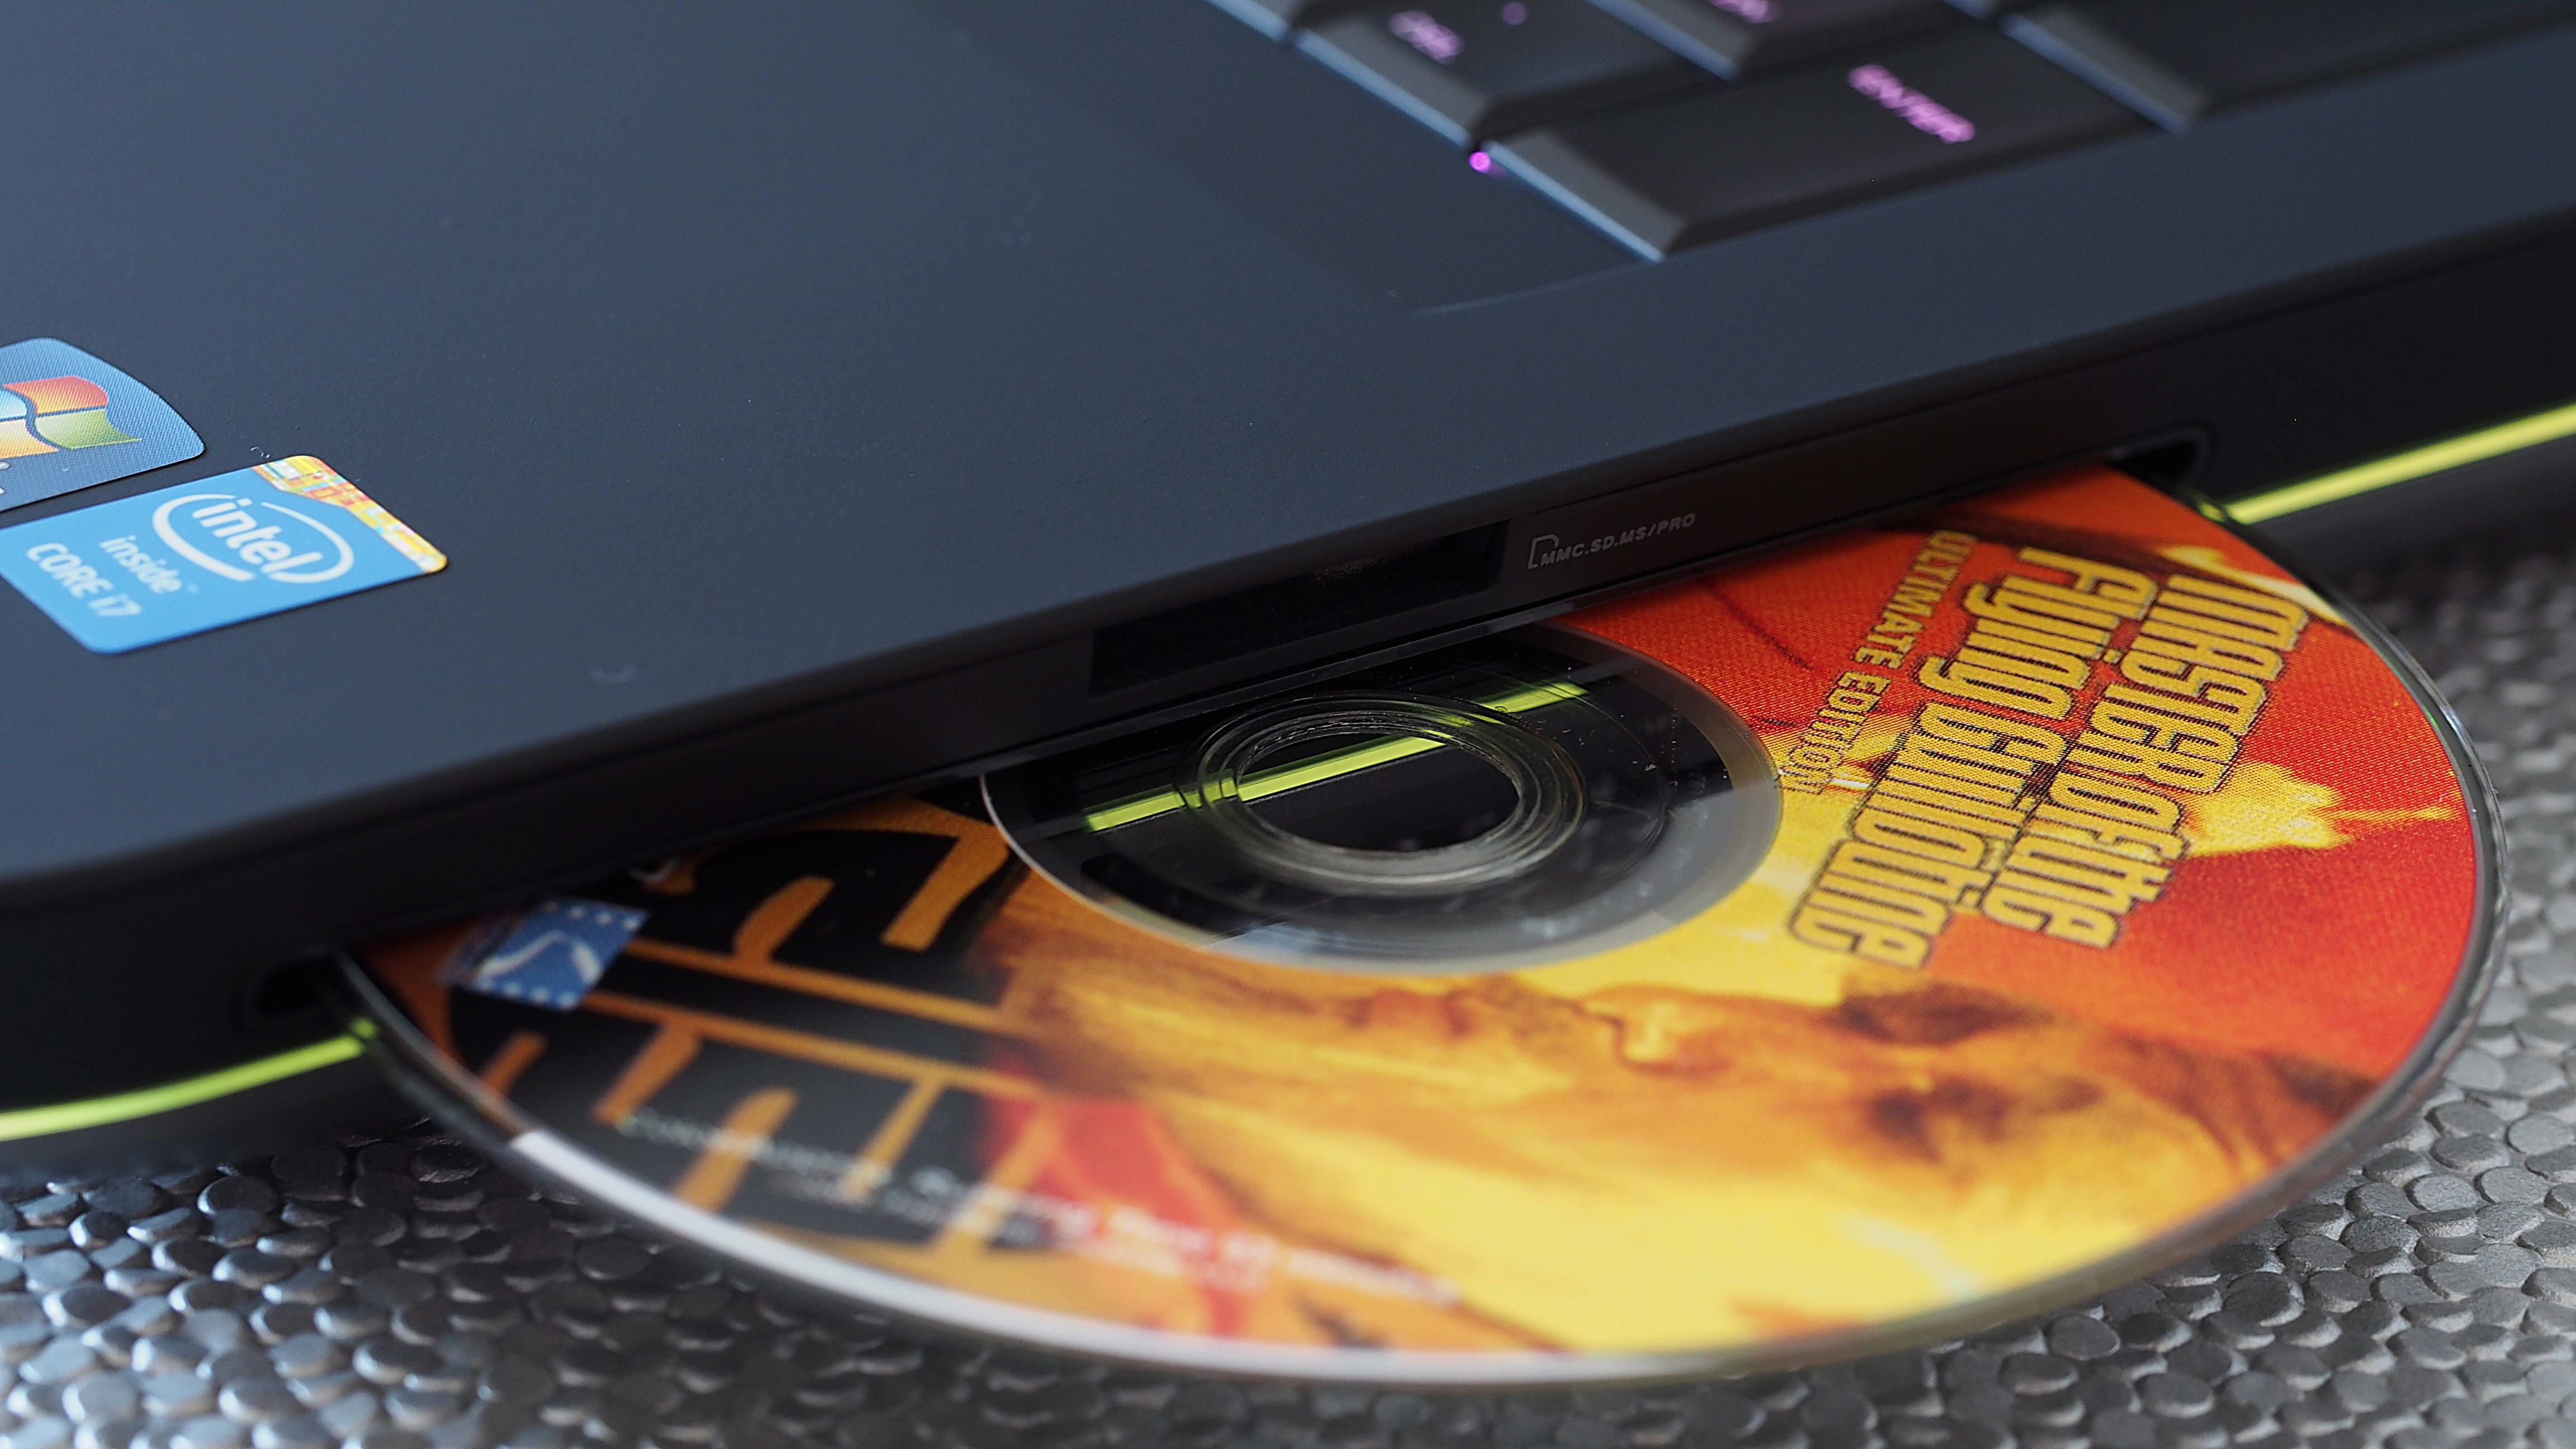 The Alienware 17 has a discrete Blu-ray drive on the right side.